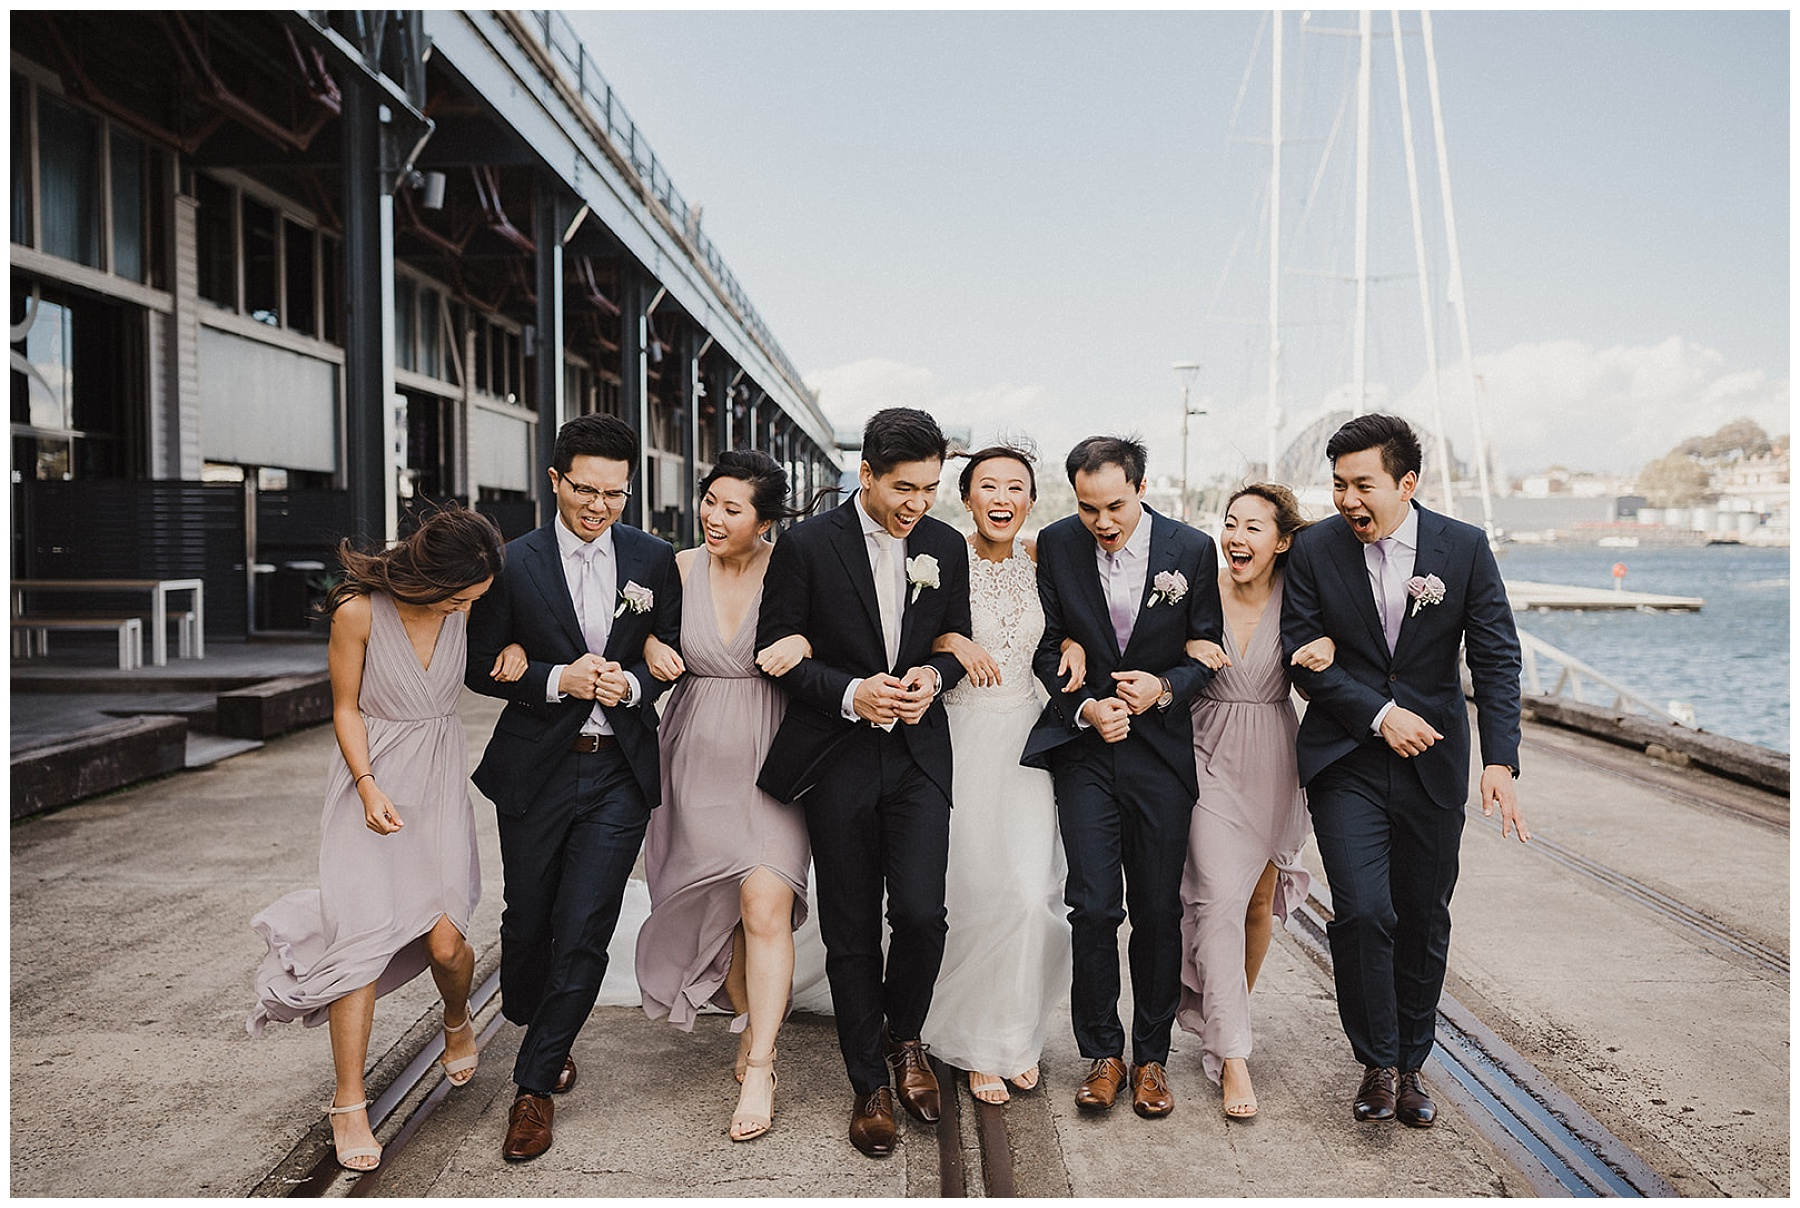 Candid photography of Sydney Bride and Groom and their wedding party